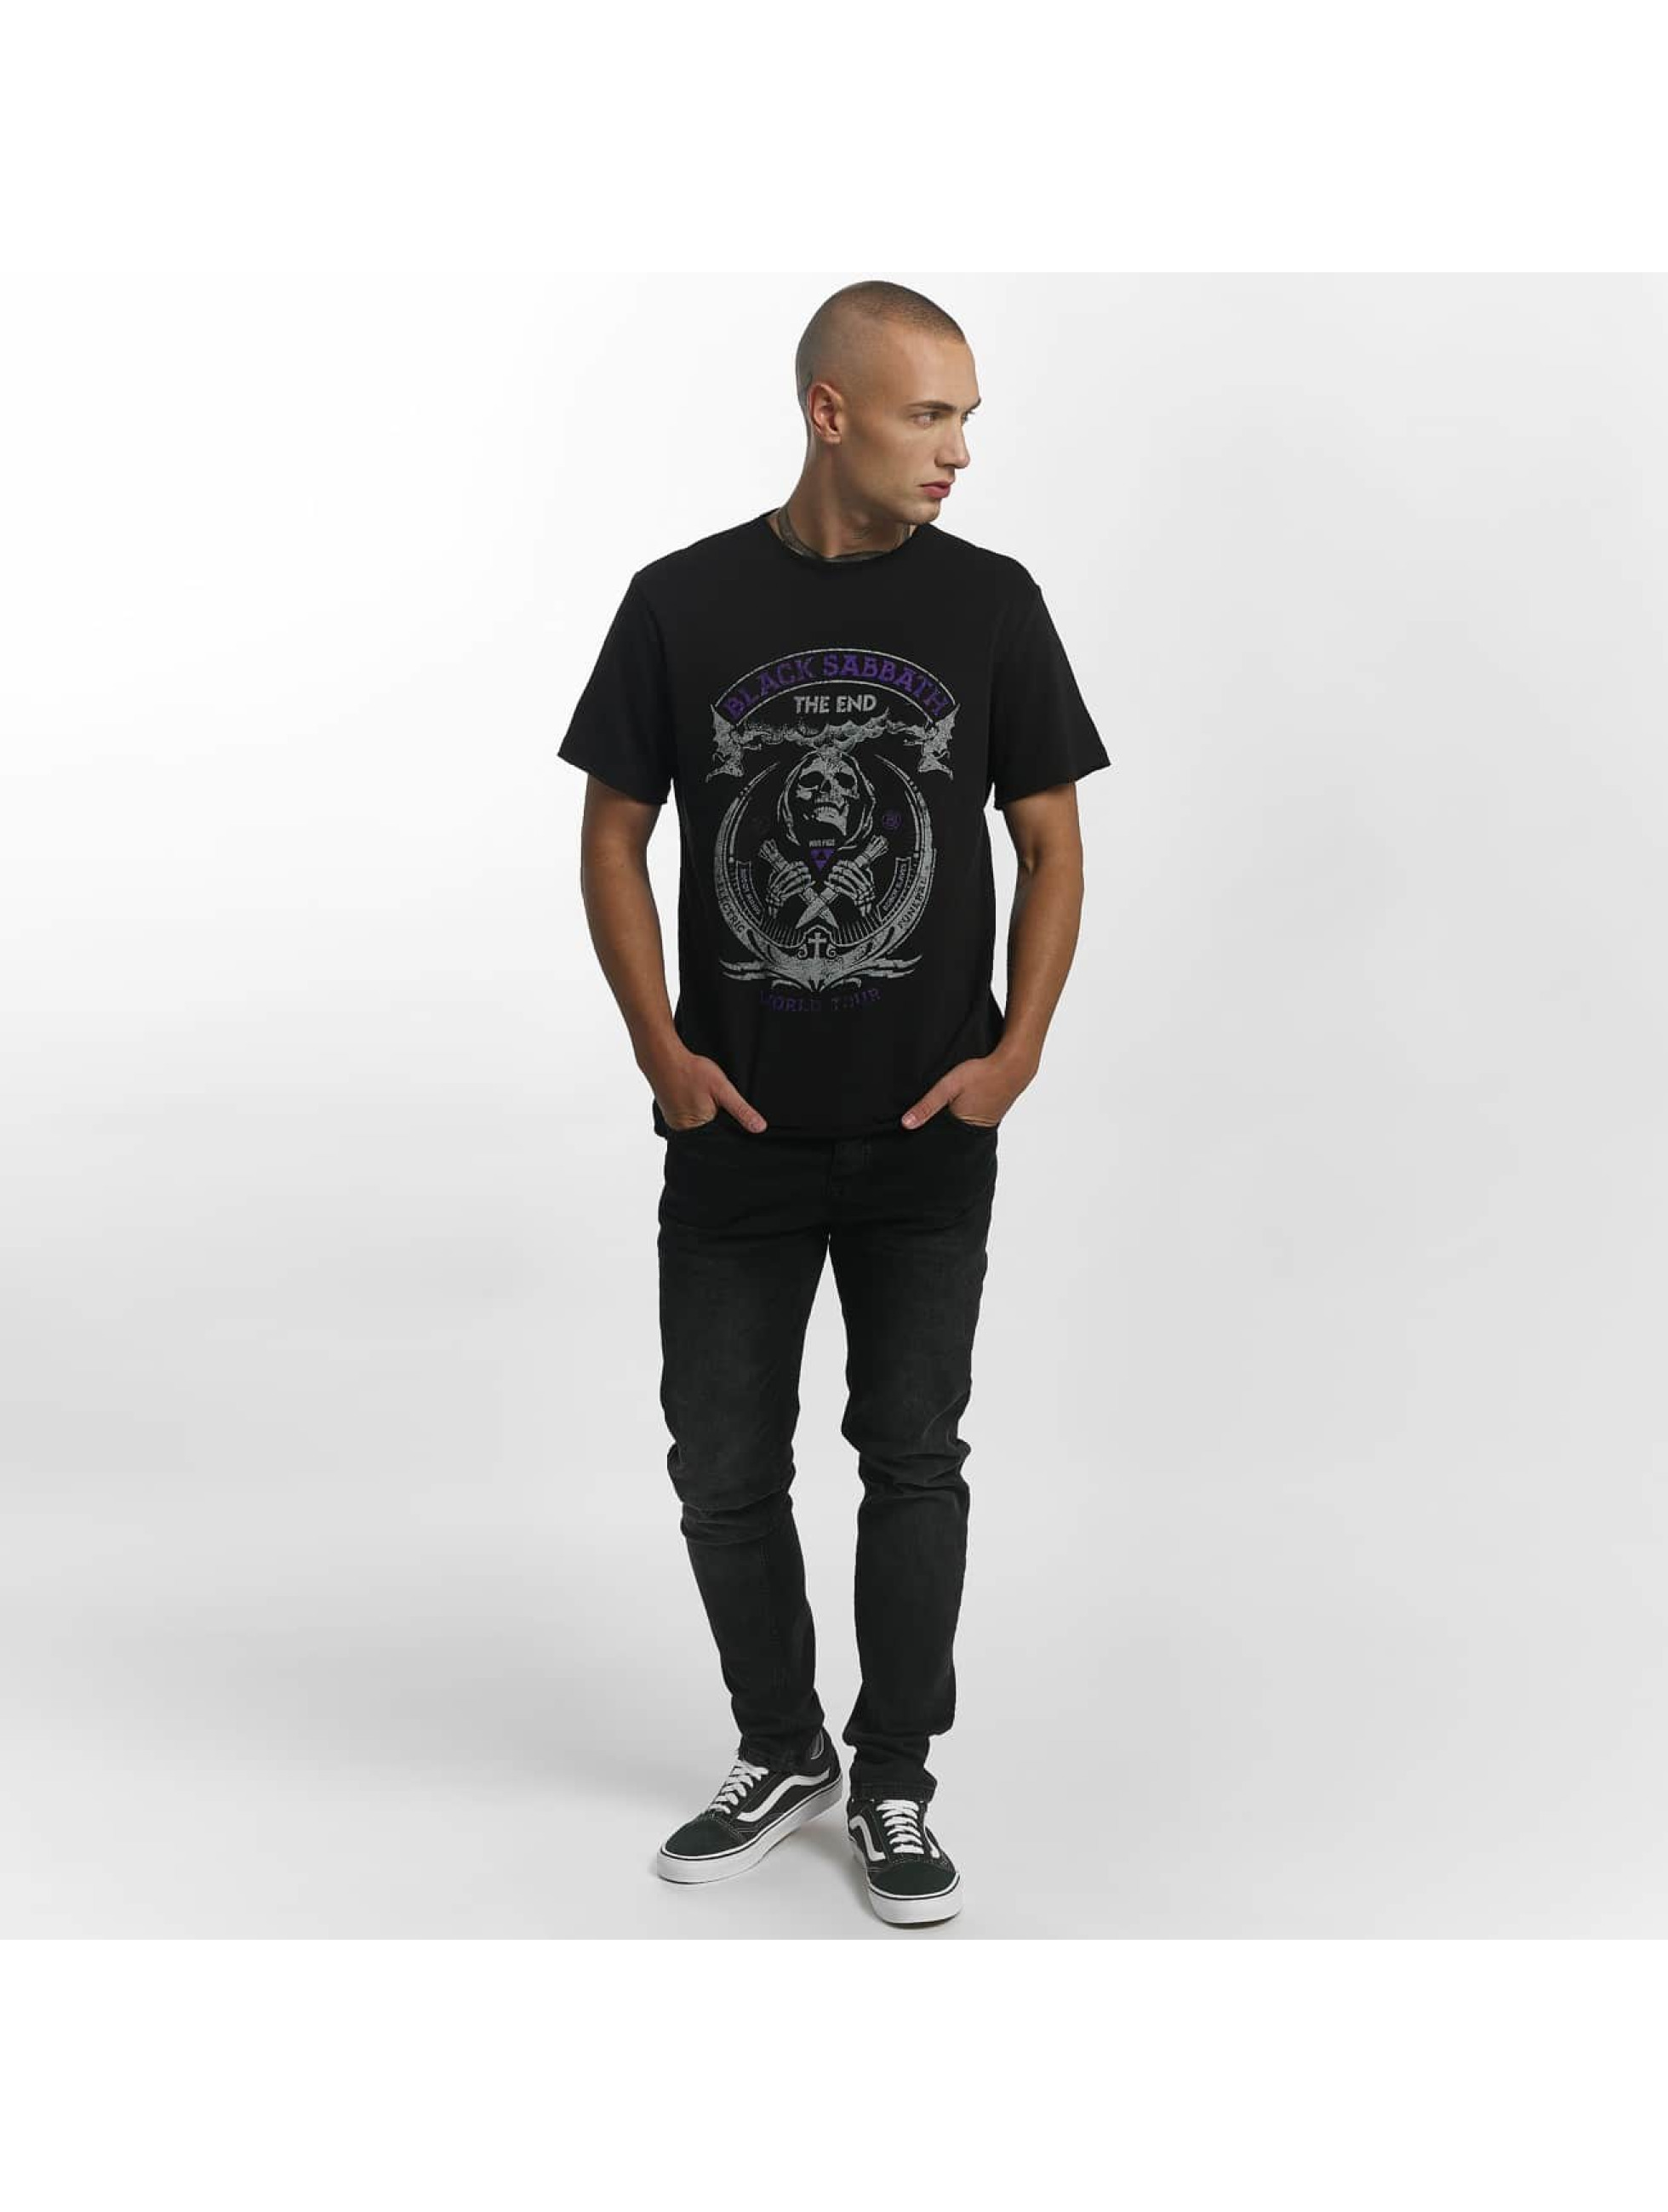 Amplified T-Shirt Black Sabbath The End schwarz